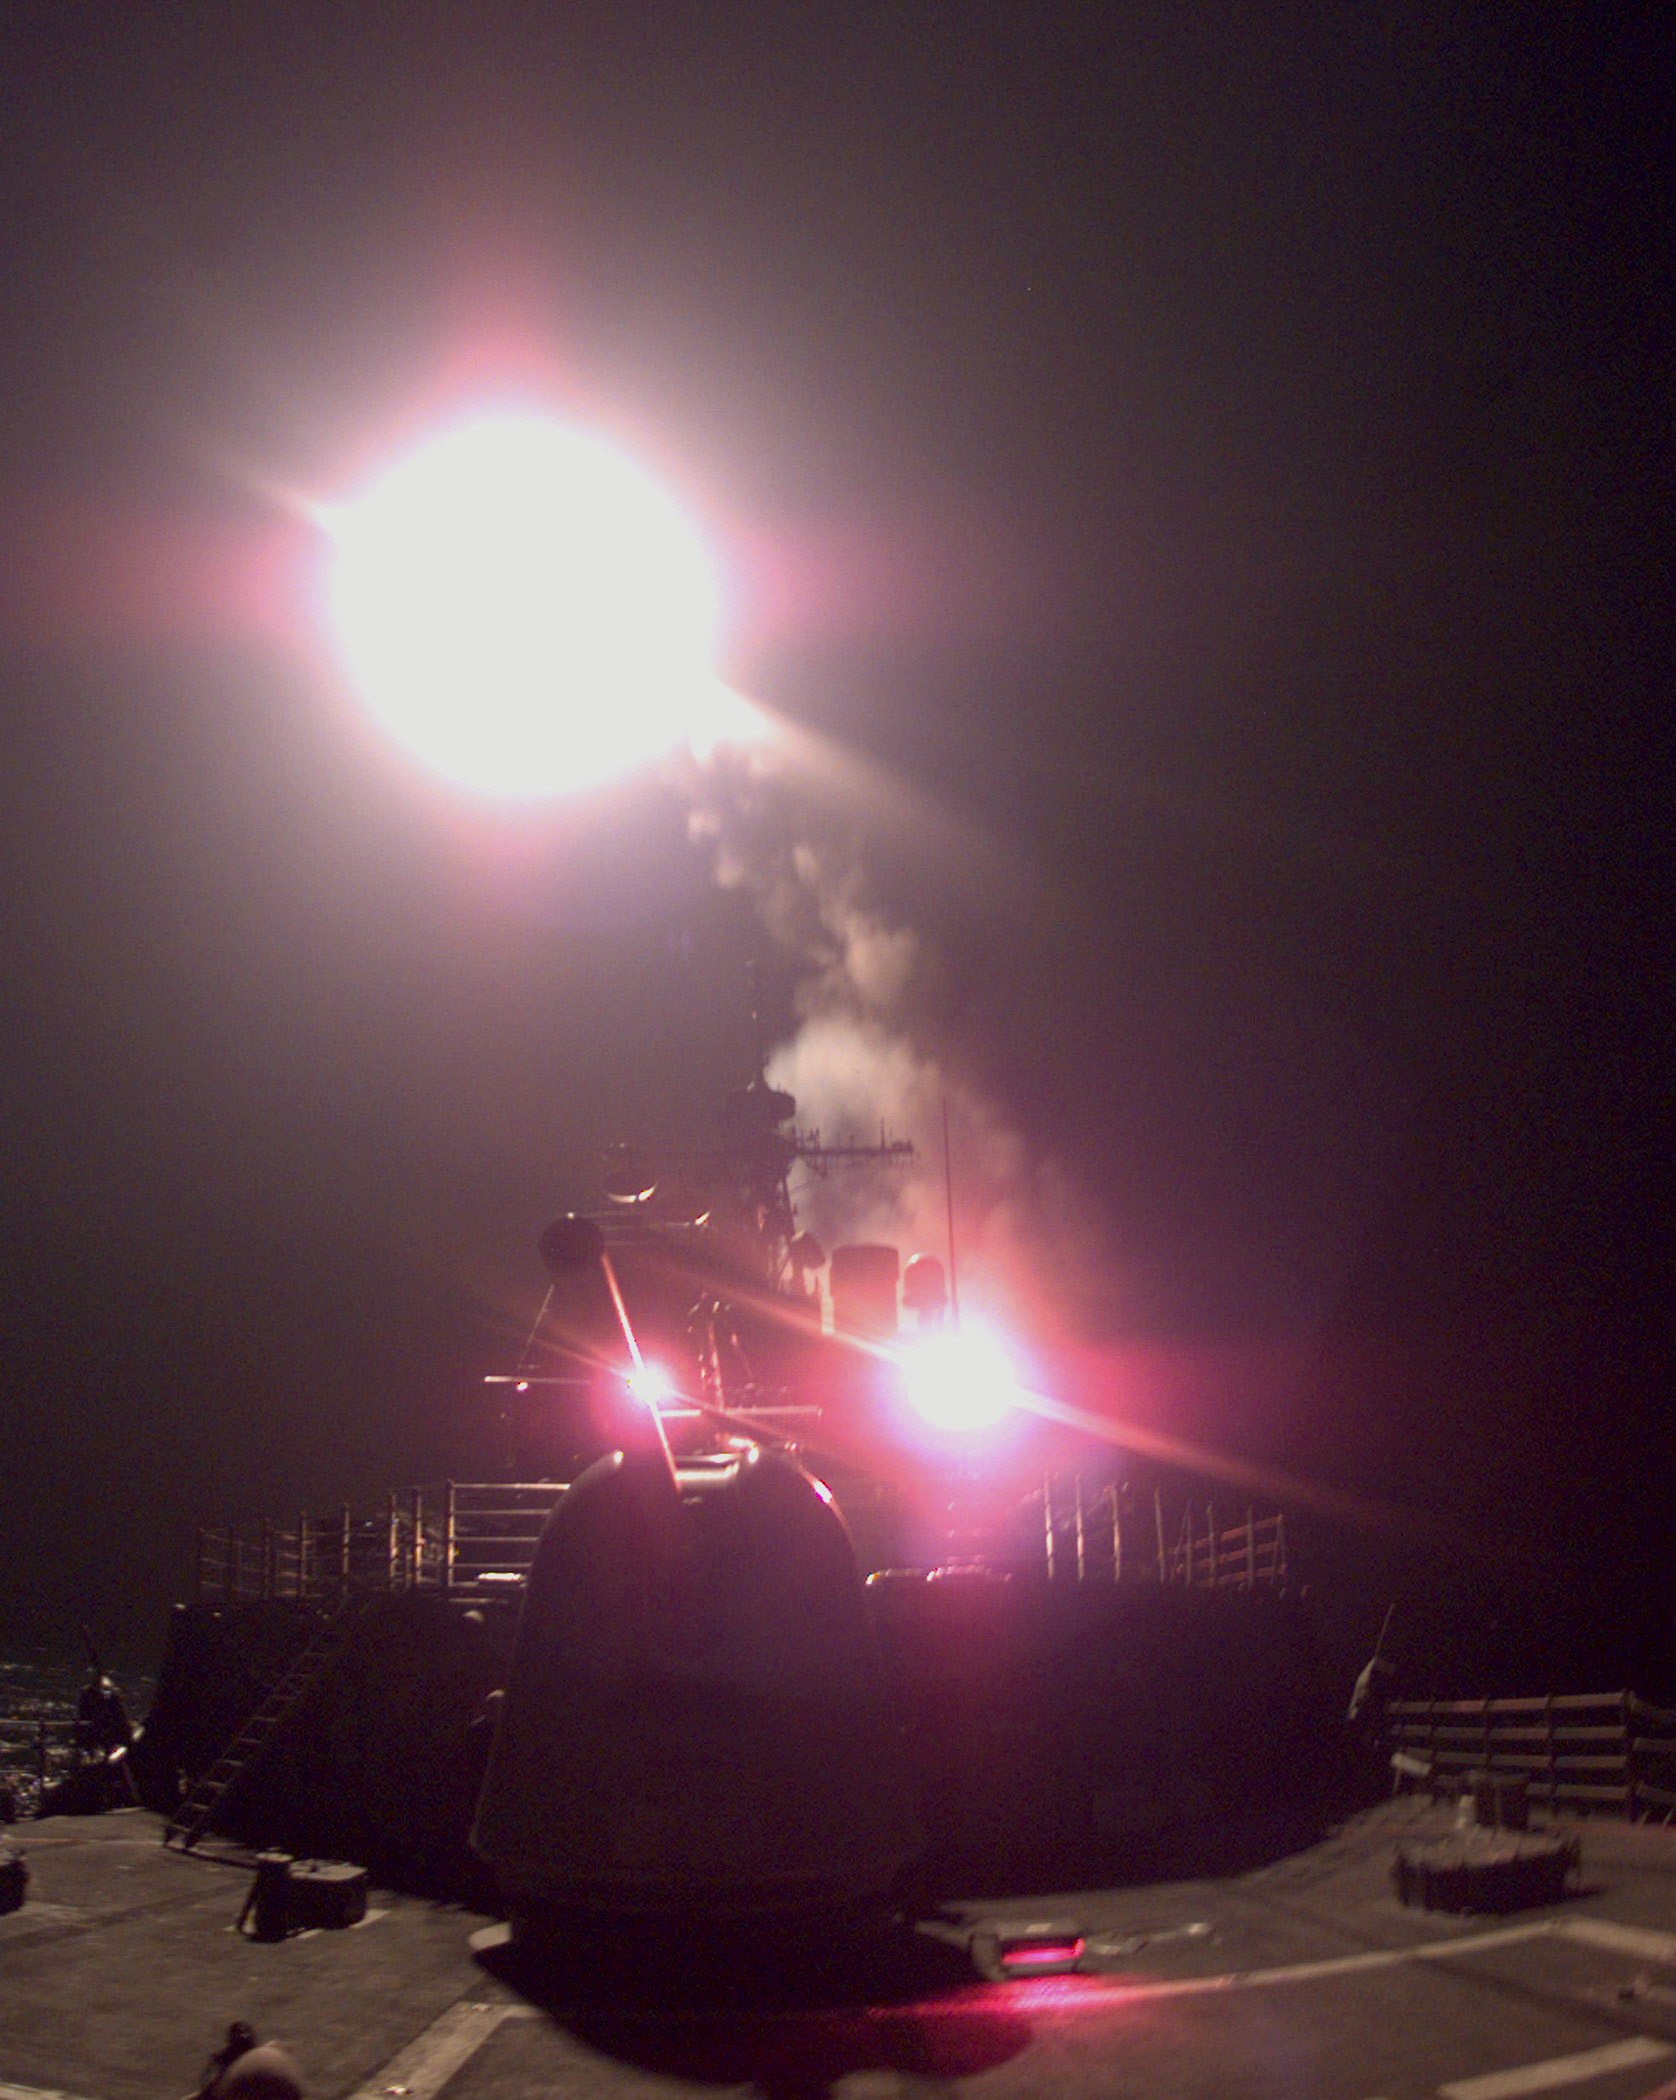 Uss Philippine Sea Launches Tomahawk Missile..